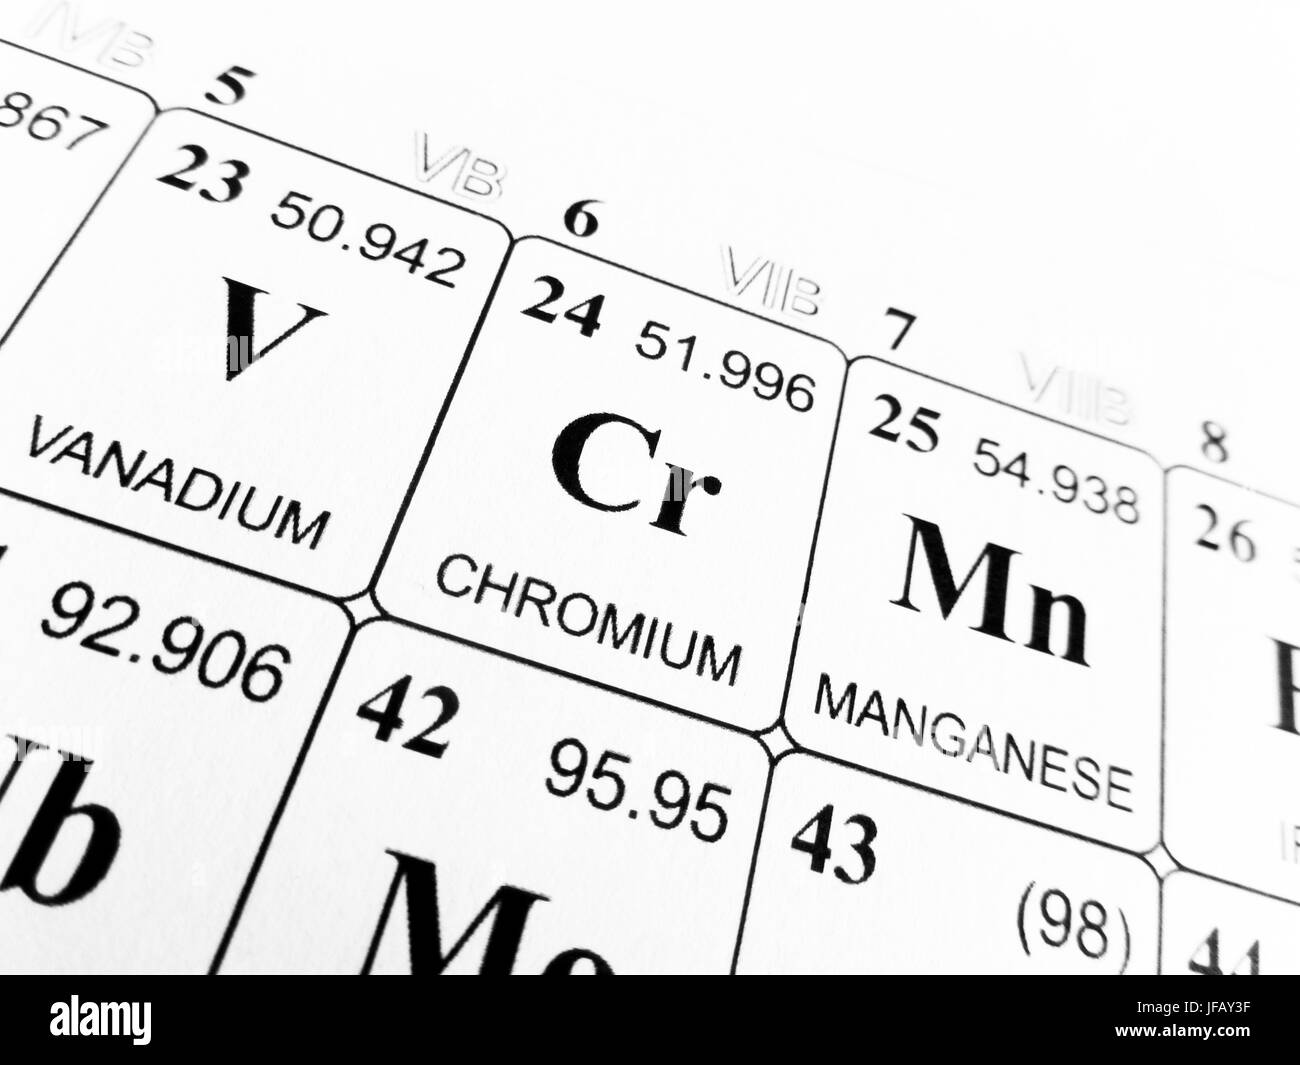 Chromium on the periodic table of the elements stock photo chromium on the periodic table of the elements gamestrikefo Choice Image